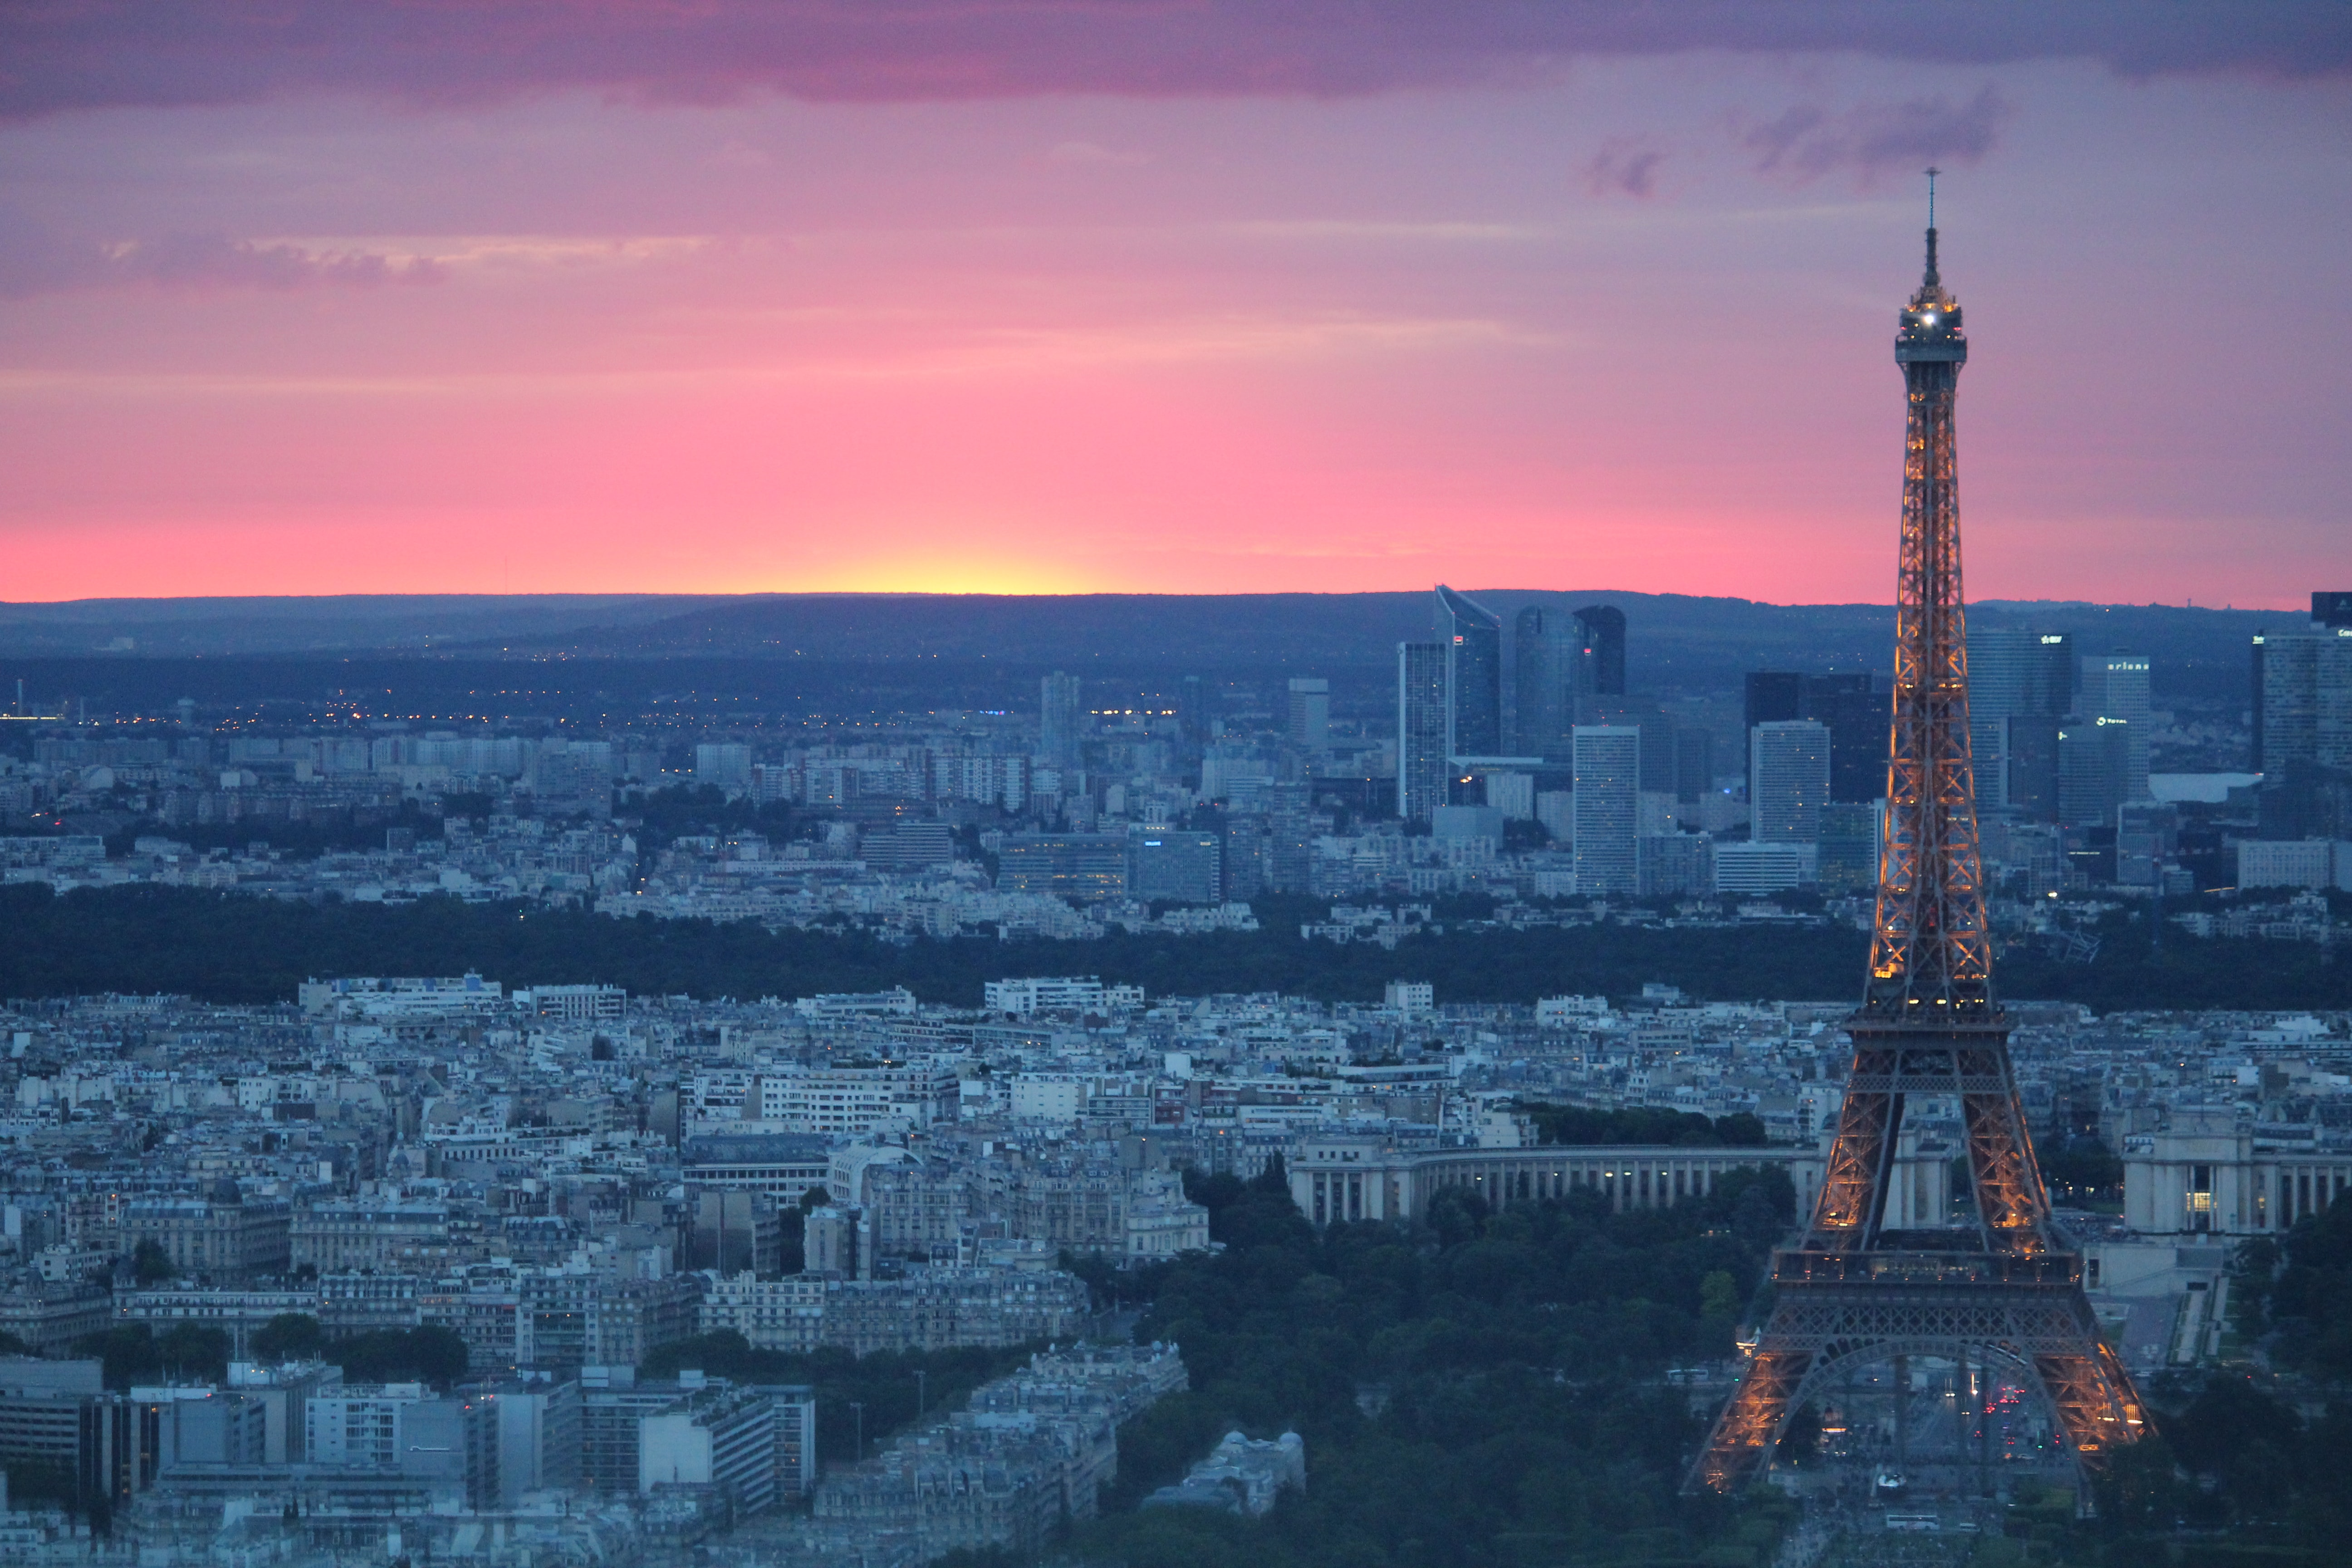 photo of Eiffel Tower, France